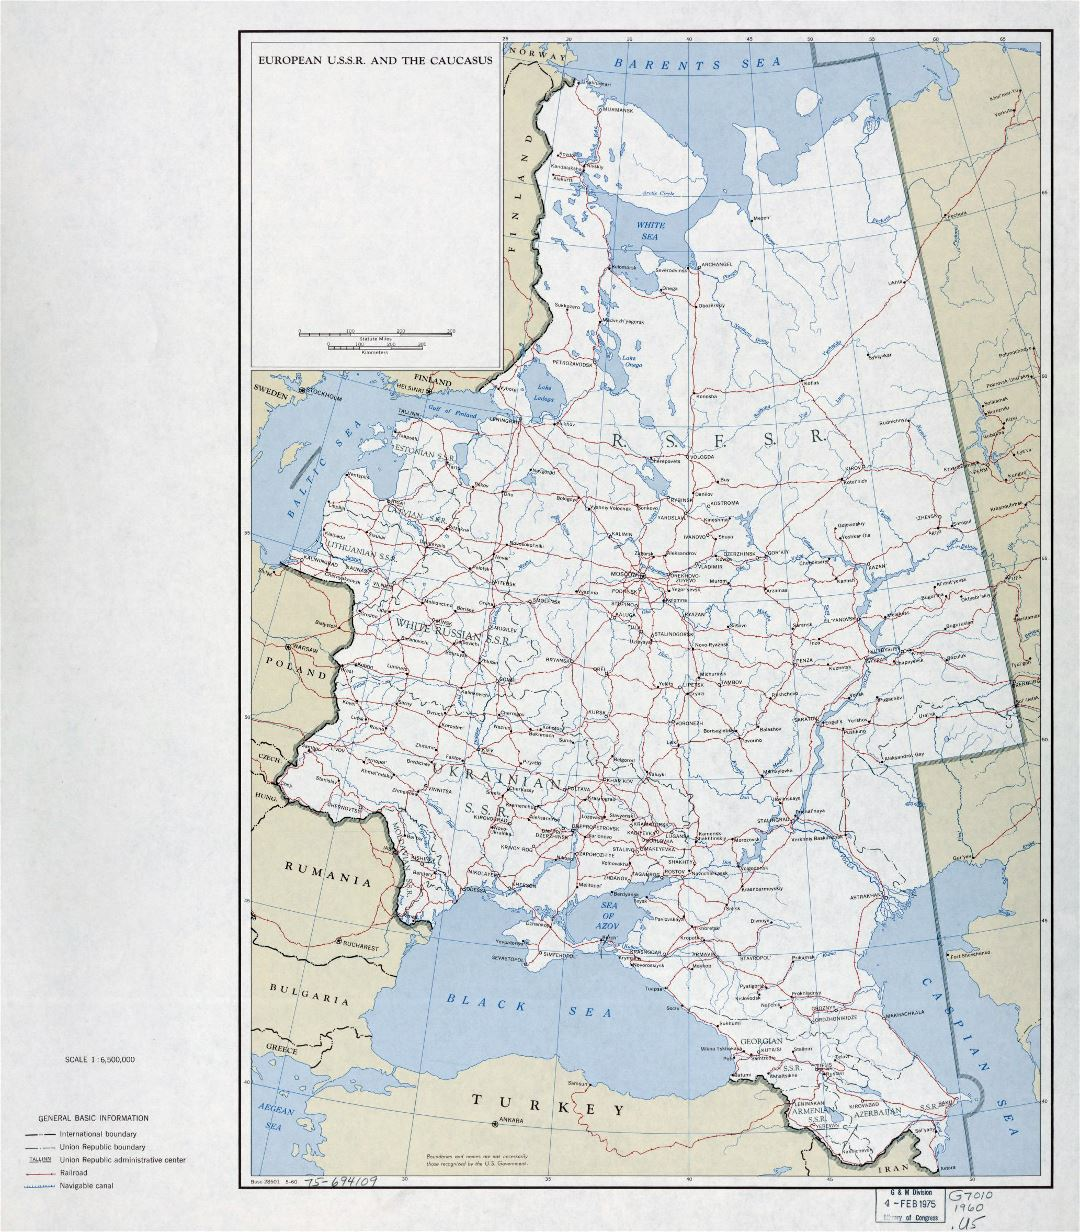 Large detailed political and administrative map of European U.S.S.R. and the Caucasus with roads, railroads and cities - 1960